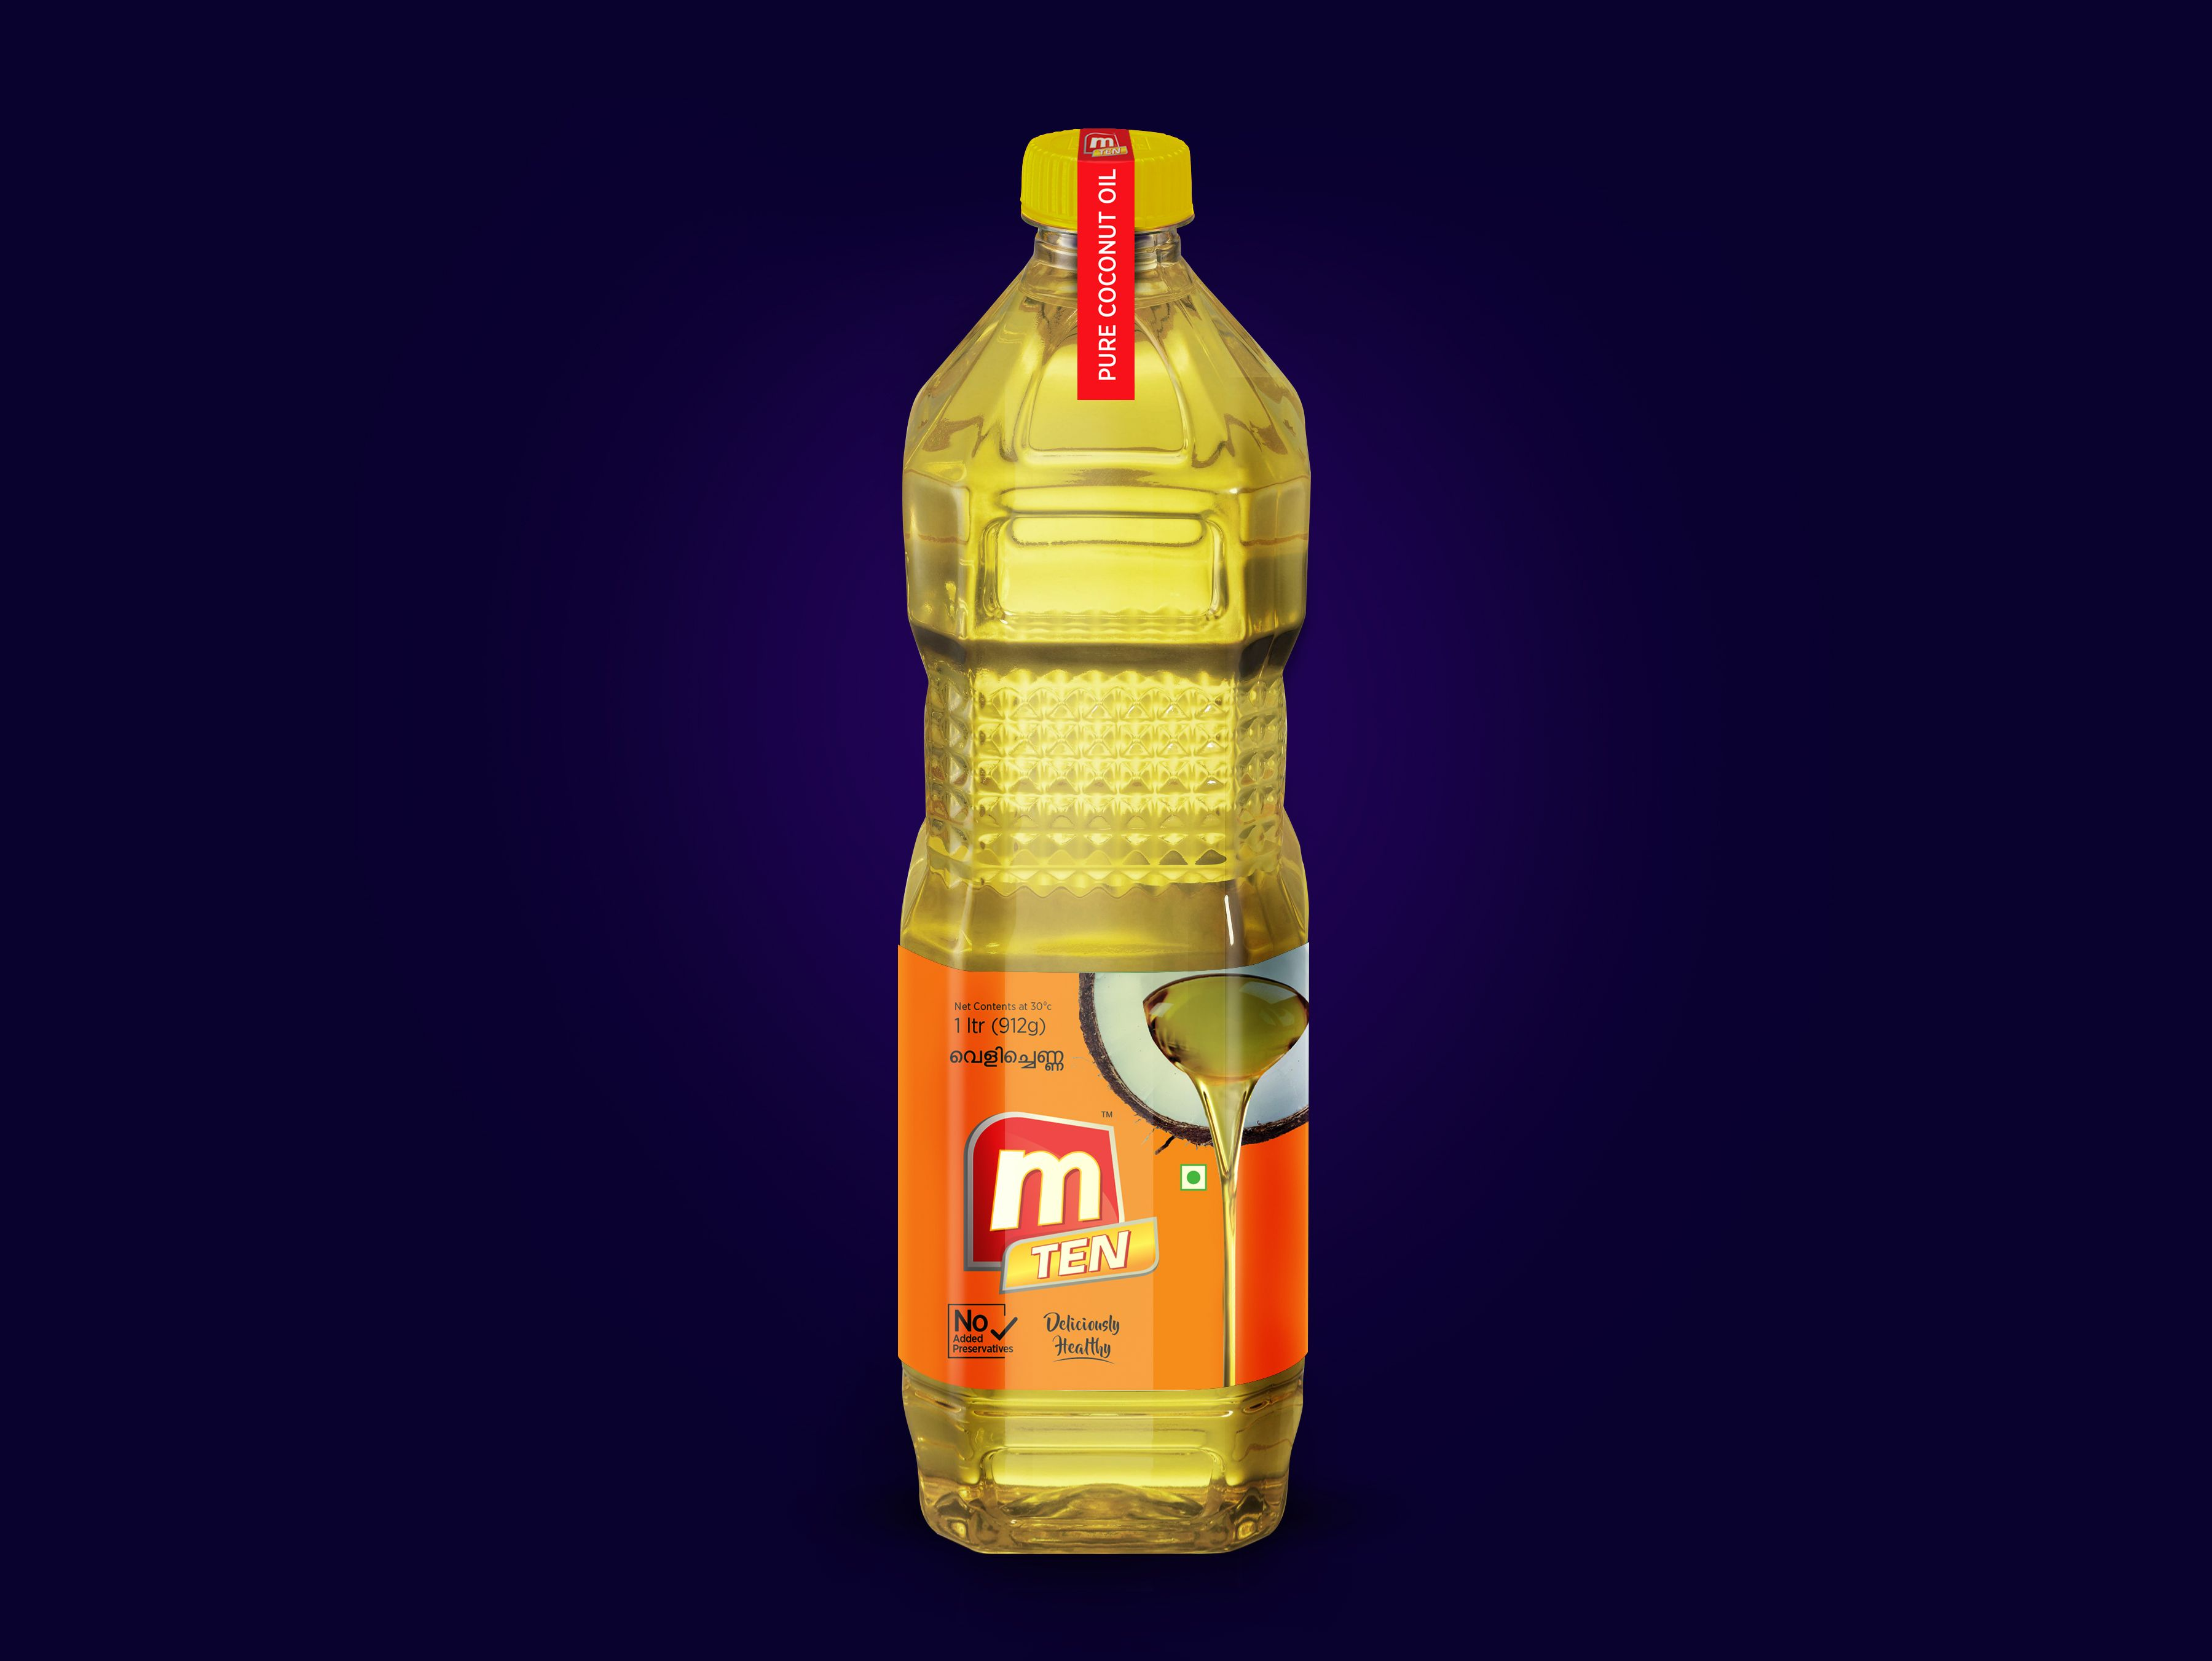 Oil Package Design Packaging Design Communication Design Branding Design